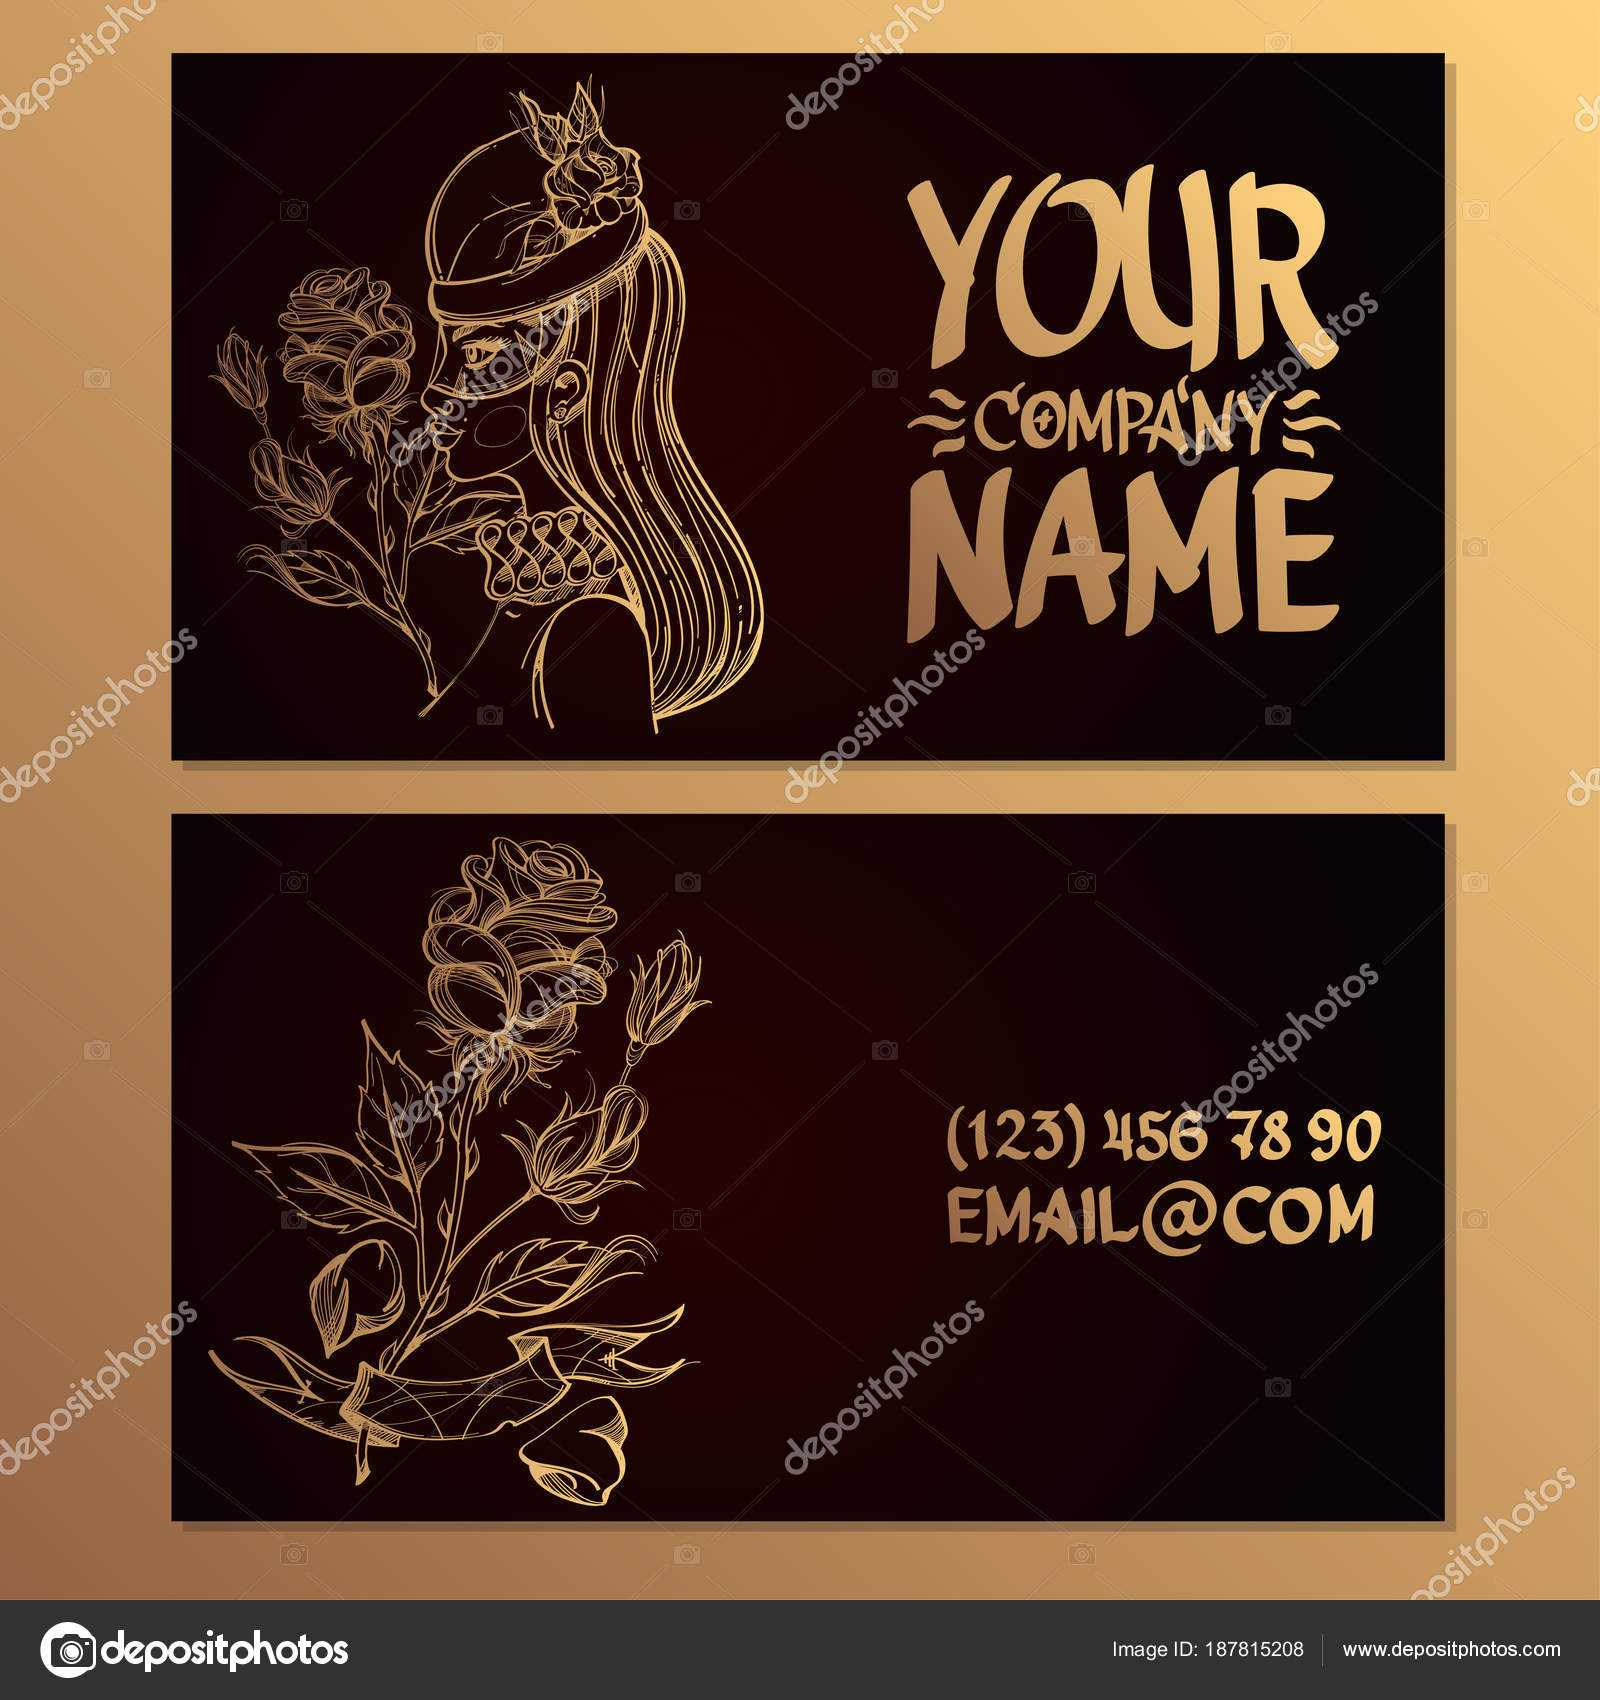 Cards Image Woman Rose Templates Creating Business Cards With Advertising Cards Templates